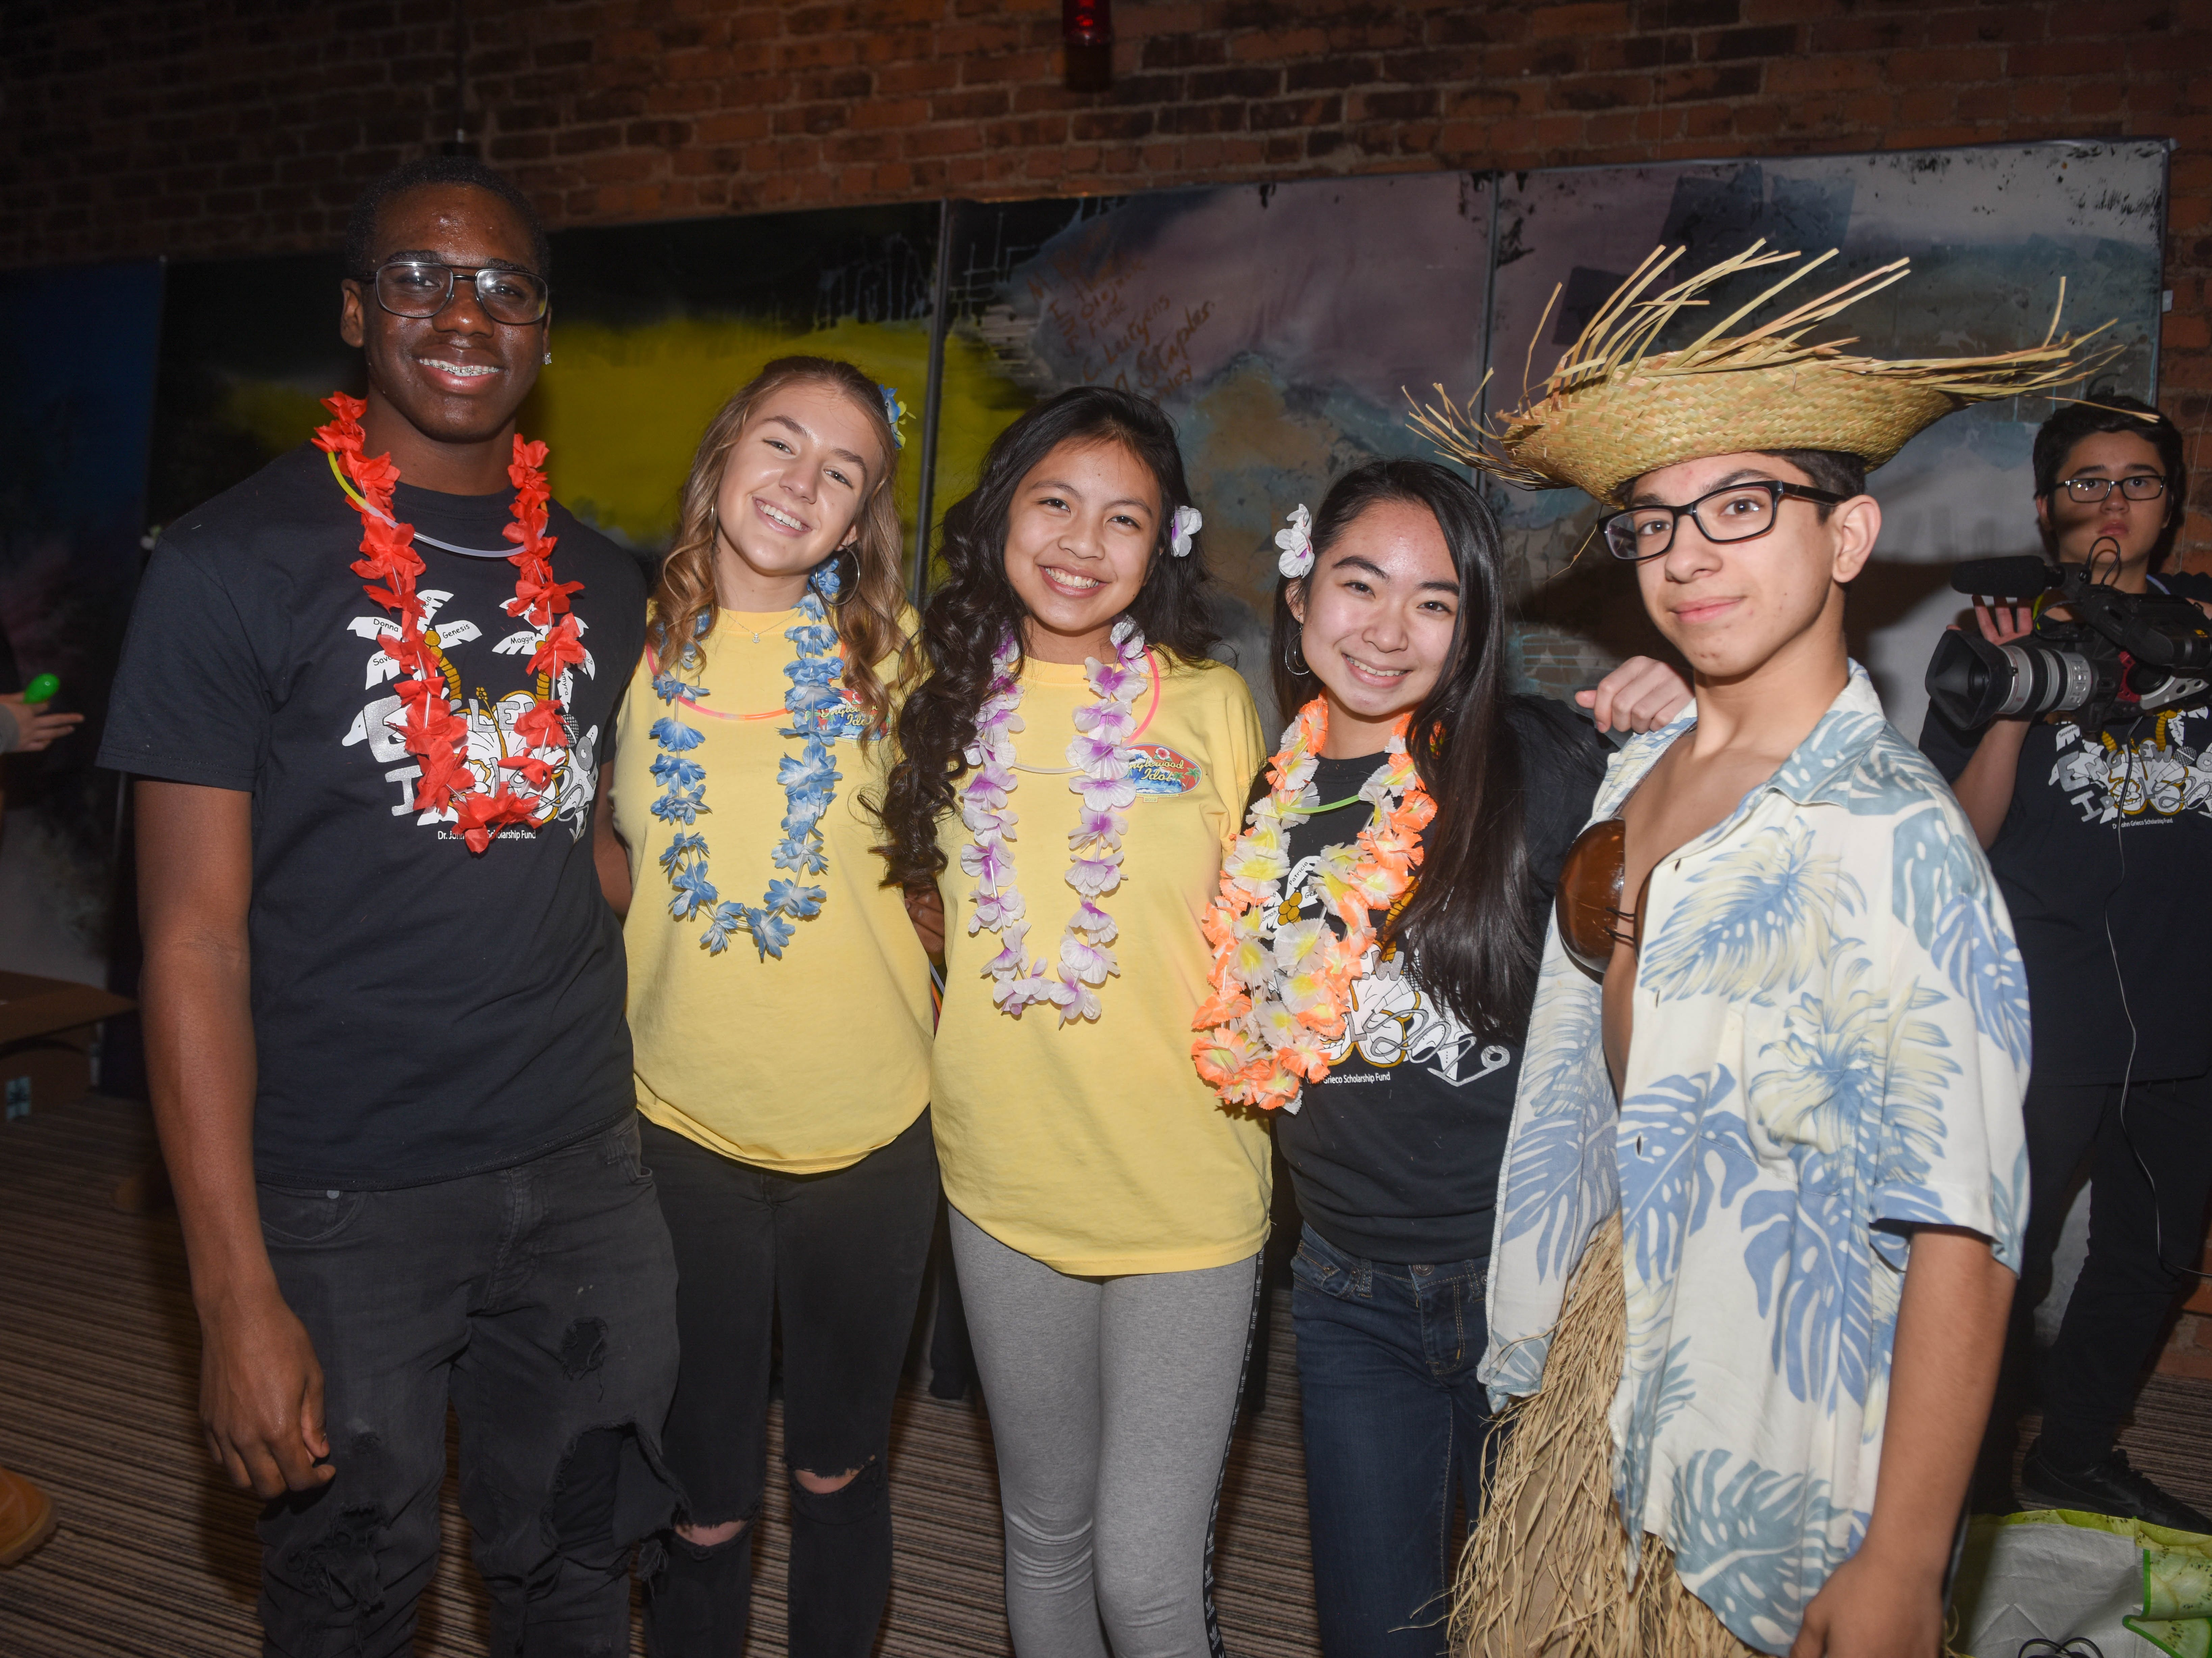 Chris Butcher, Kaylea Powell, Kiana Ong, Sienna Tu and Joey Liberti. The 2019 Englewood Idol was held at bergenPAC theater. The singing competition is open to any high school student who currently lives or goes to school in Englewood, NJ. This years winner was Genesis Capellan. 01/11/2019